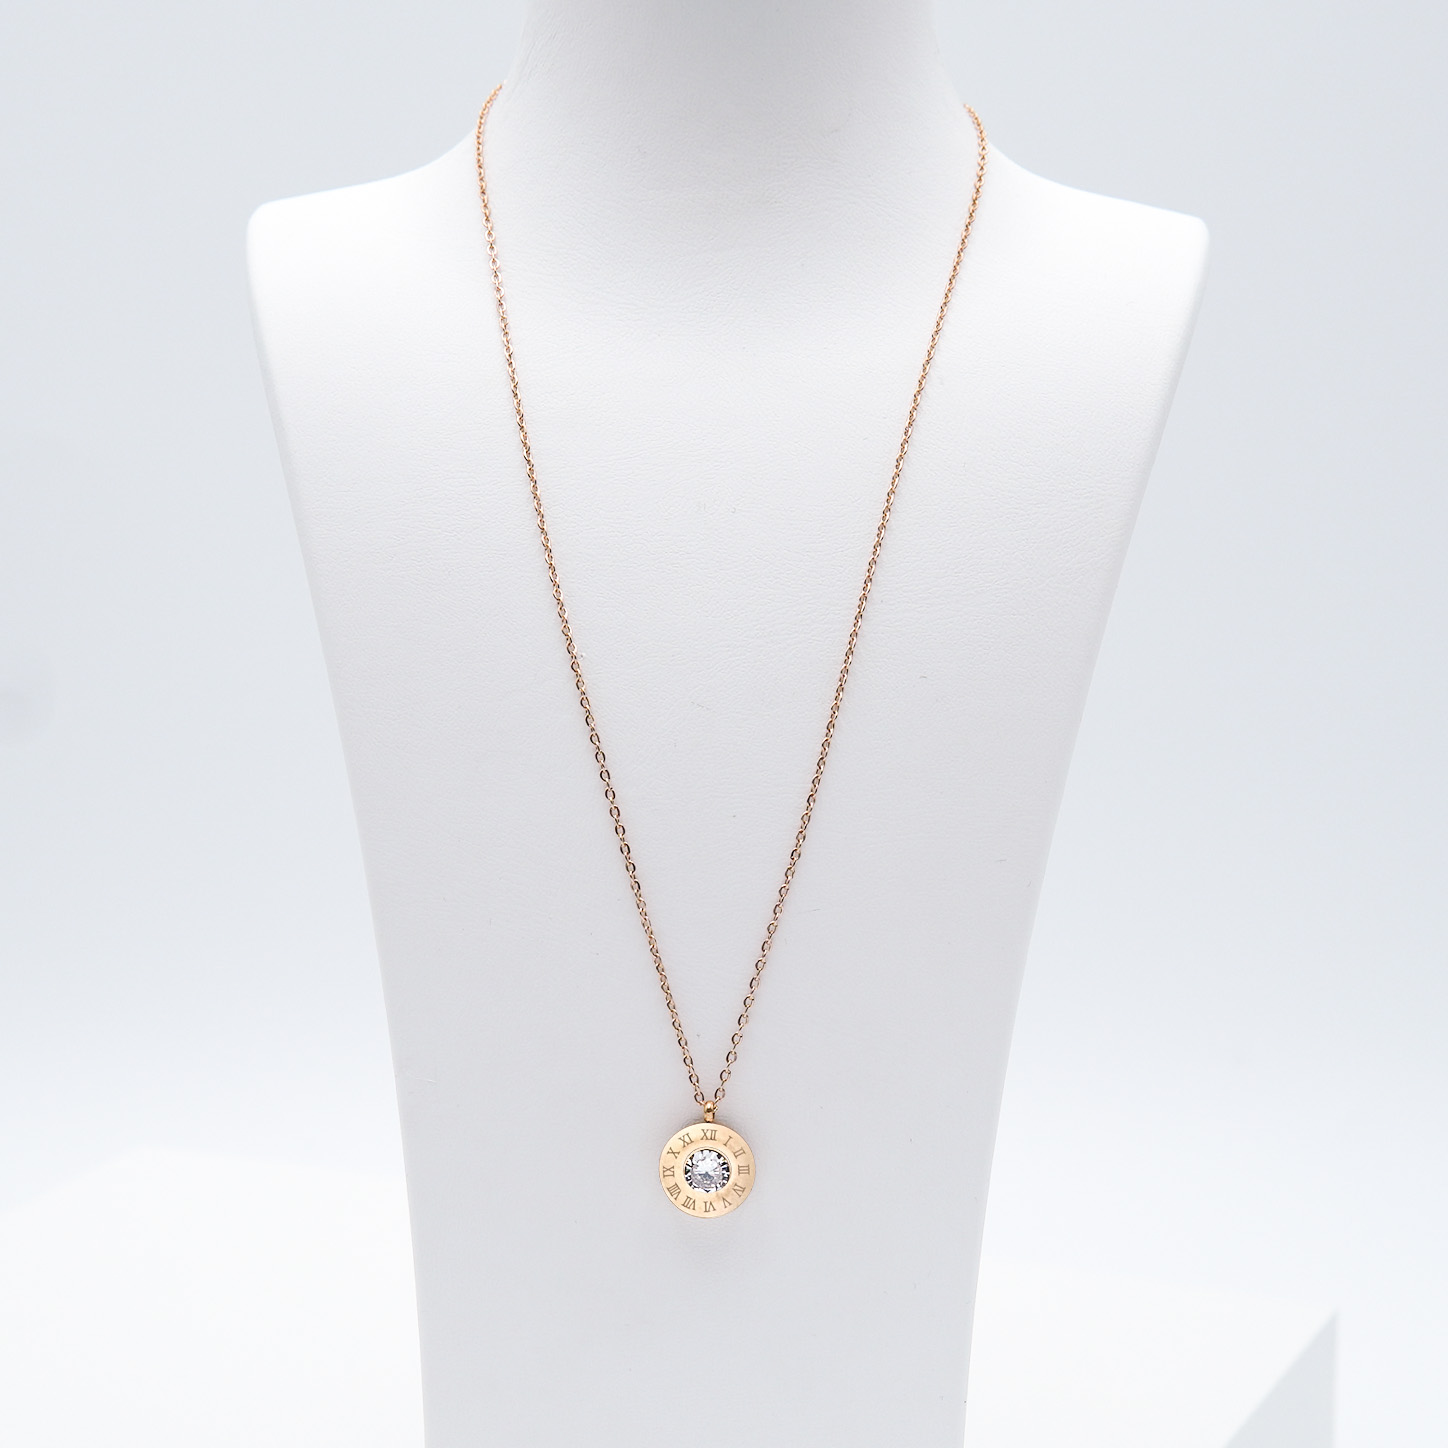 1- 4 Queen Diamonds Necklace Rose Edition Halsband Modern and trendy Necklace and women jewelry and accessories from SWEVALI fashion Sweden